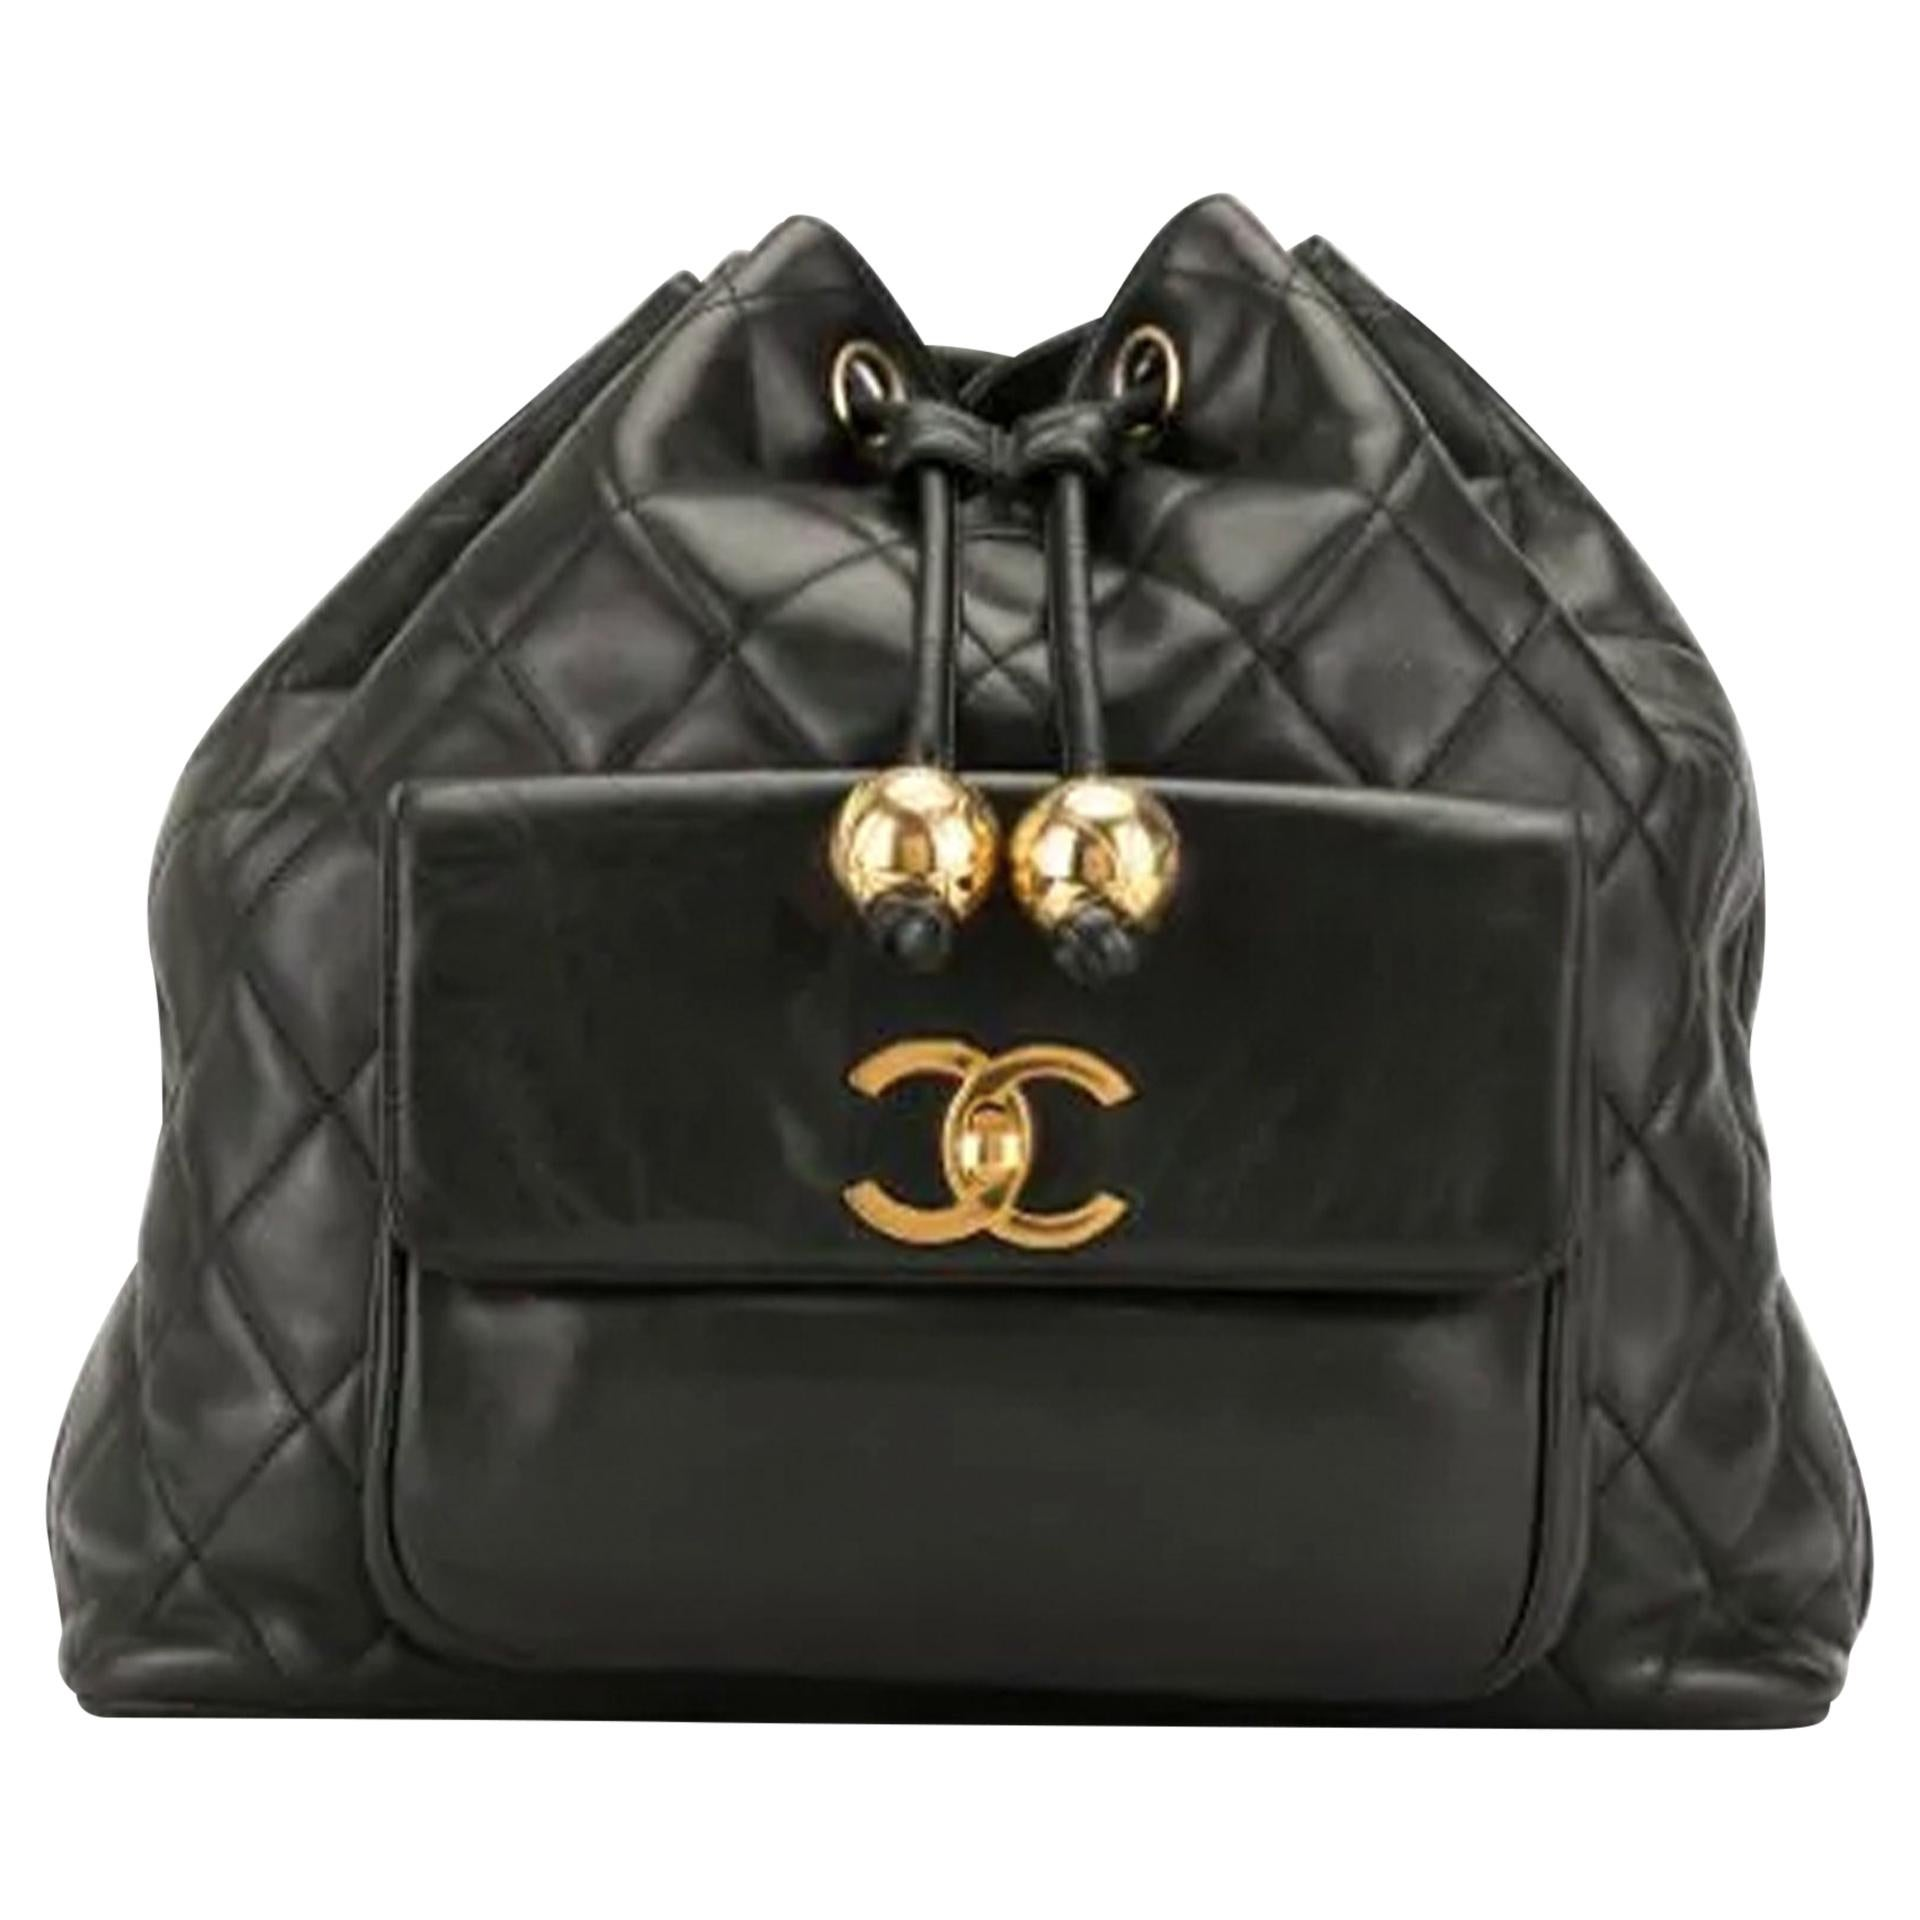 Chanel 1990's Vintage Diamond Quilted Drawstring Bucket Backpack Rucksack